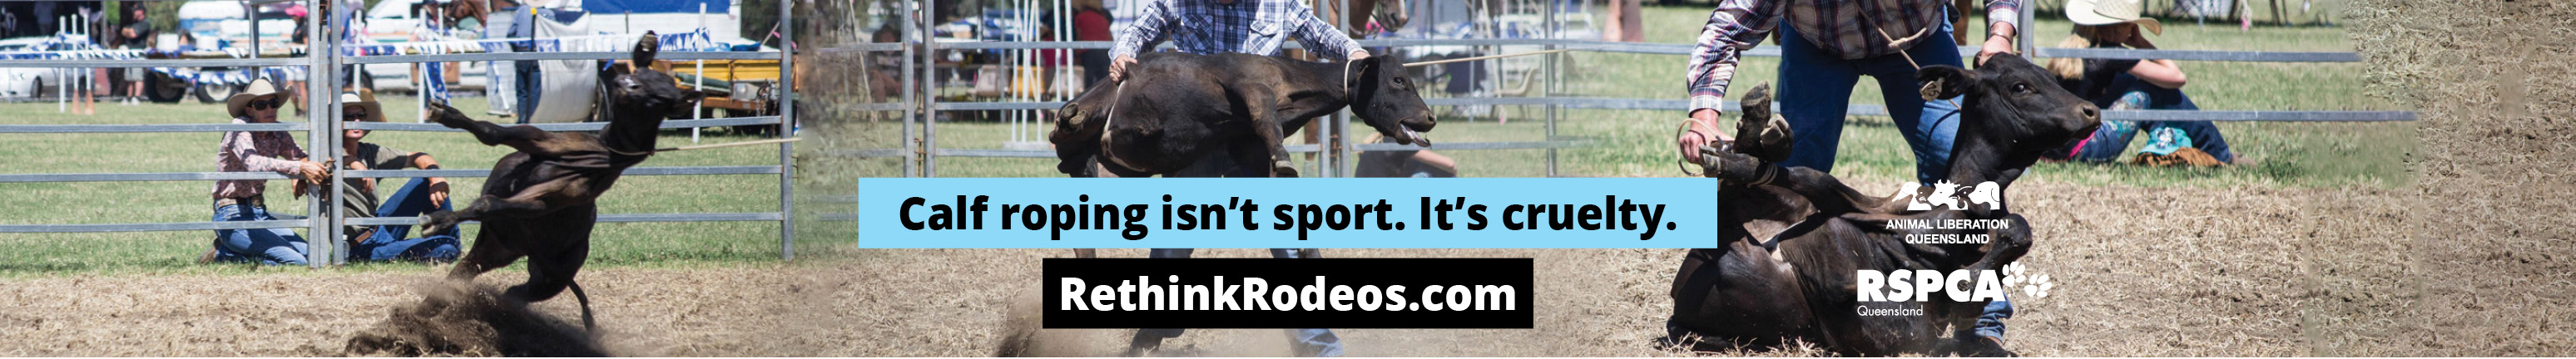 Calf roping billboard 1